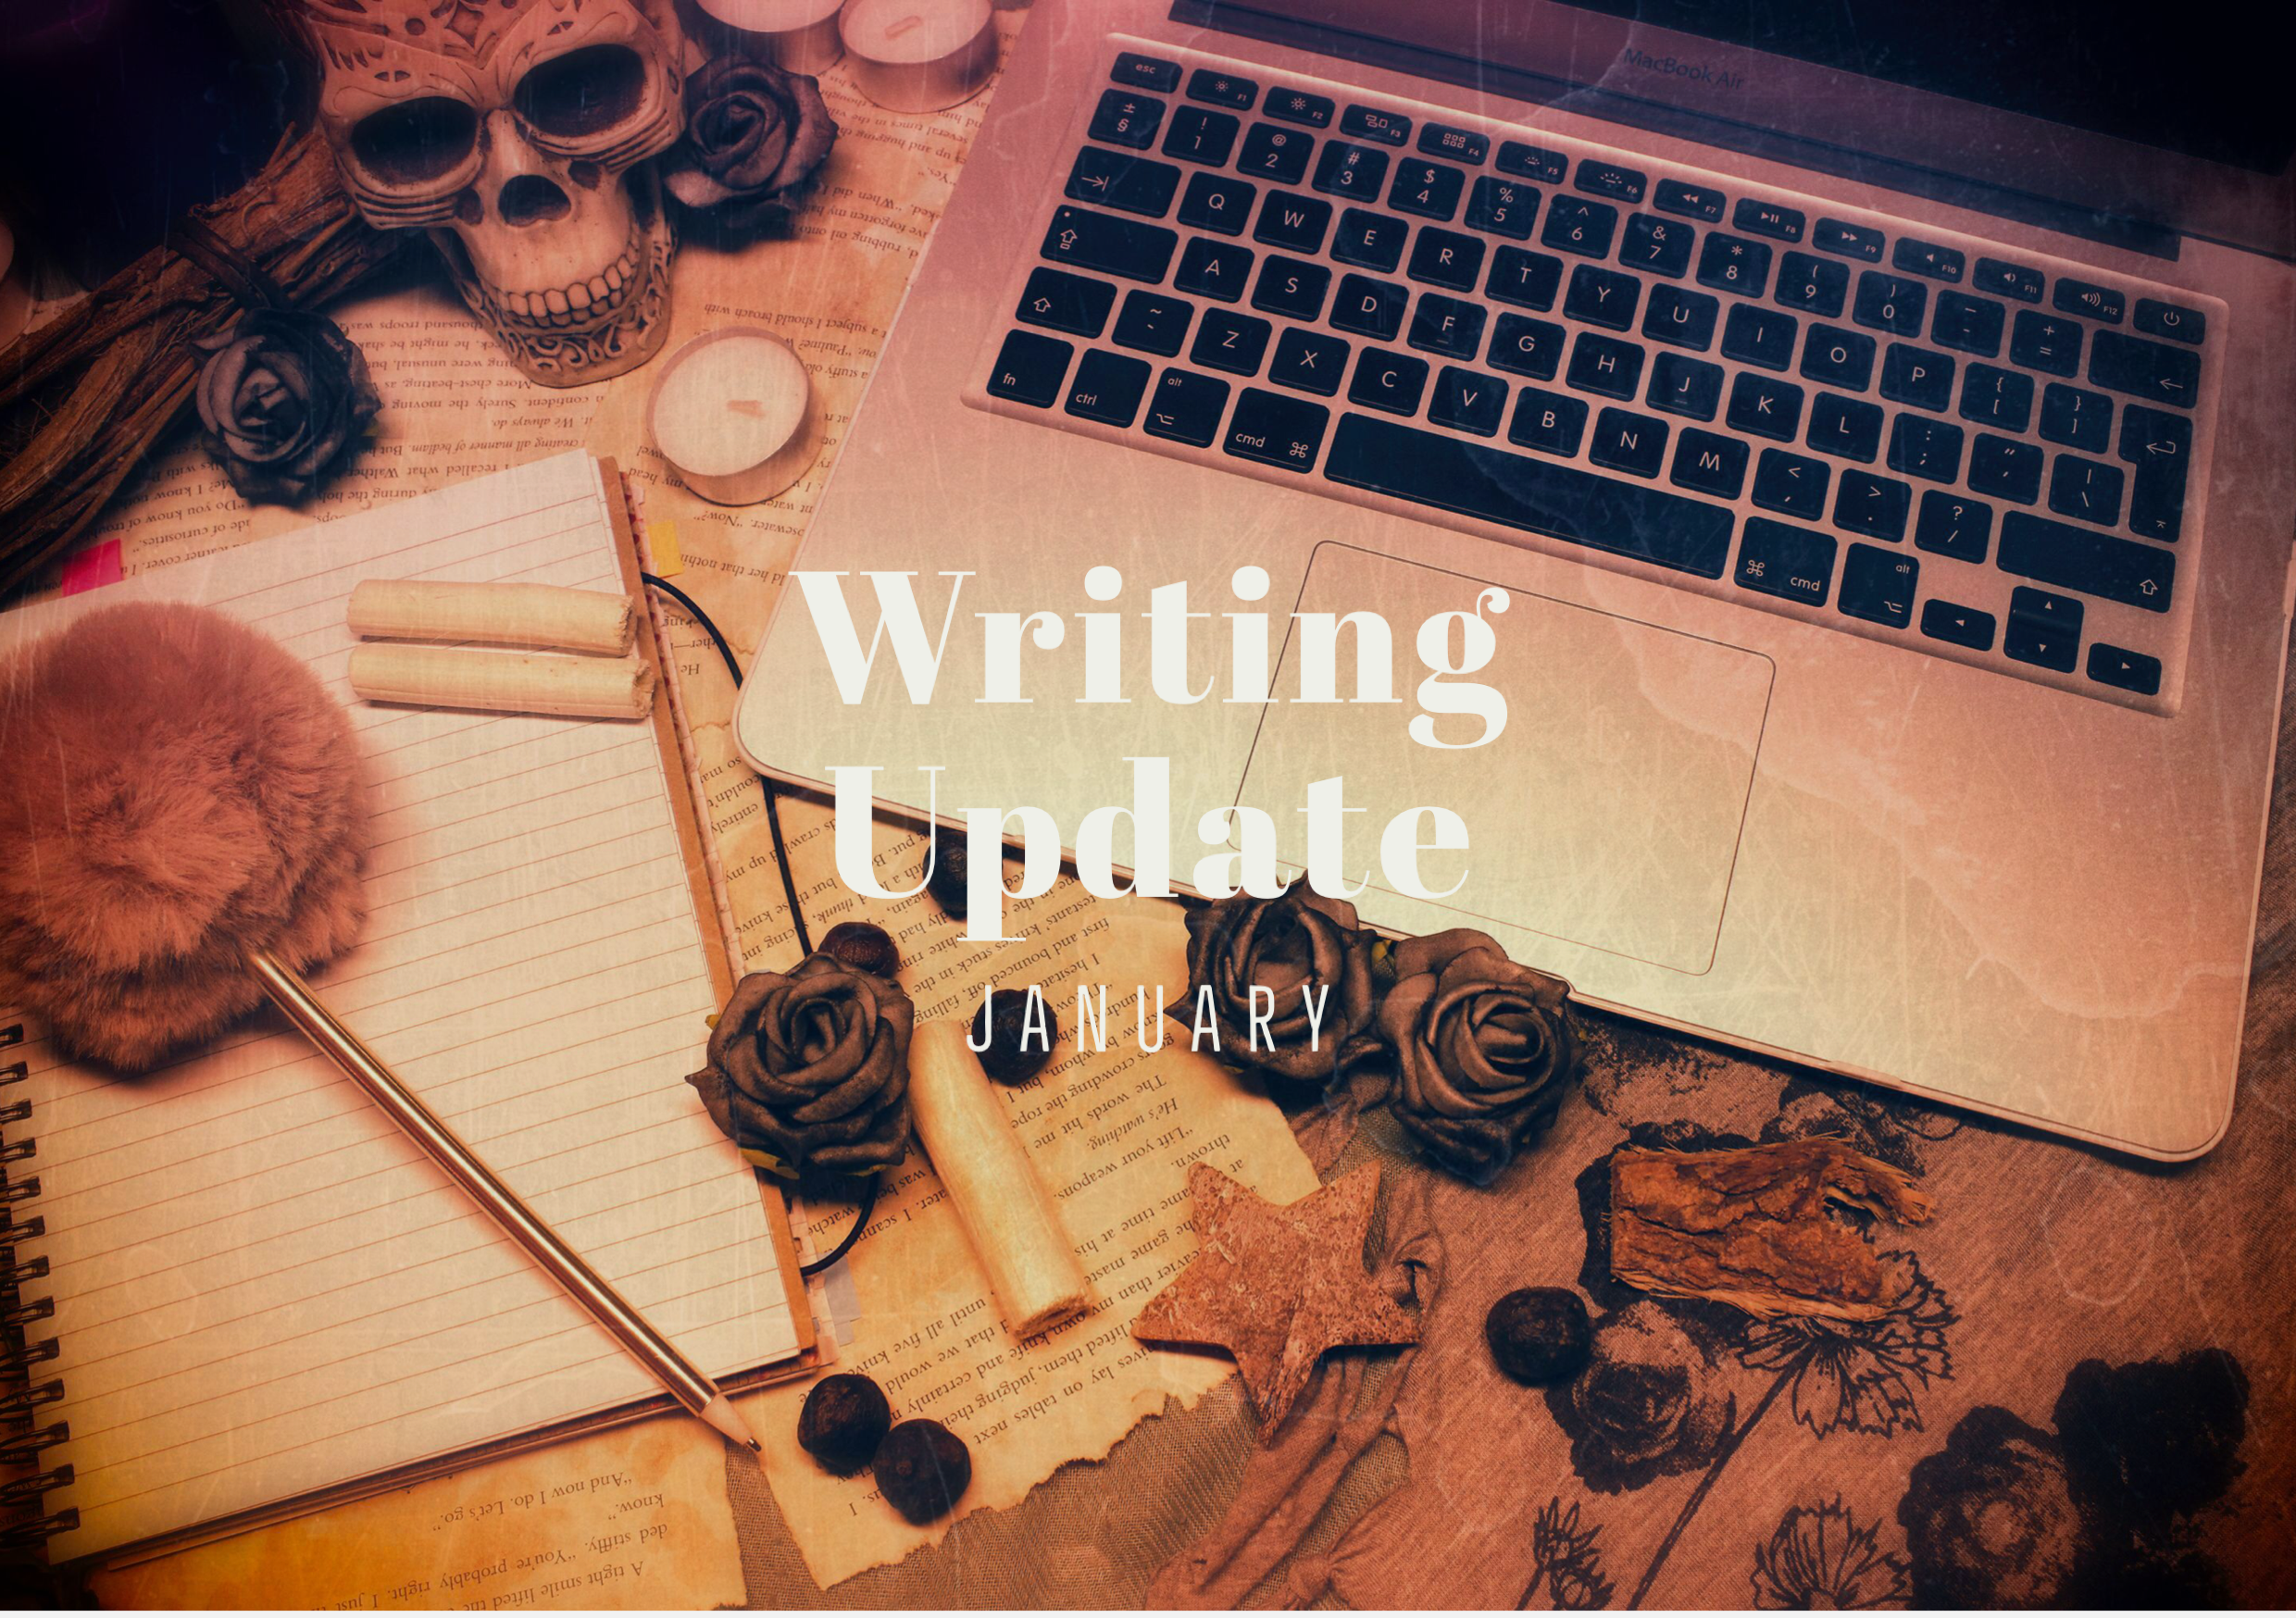 JANUARY 2021 Writing Update #1: The Return of the Writer Girl